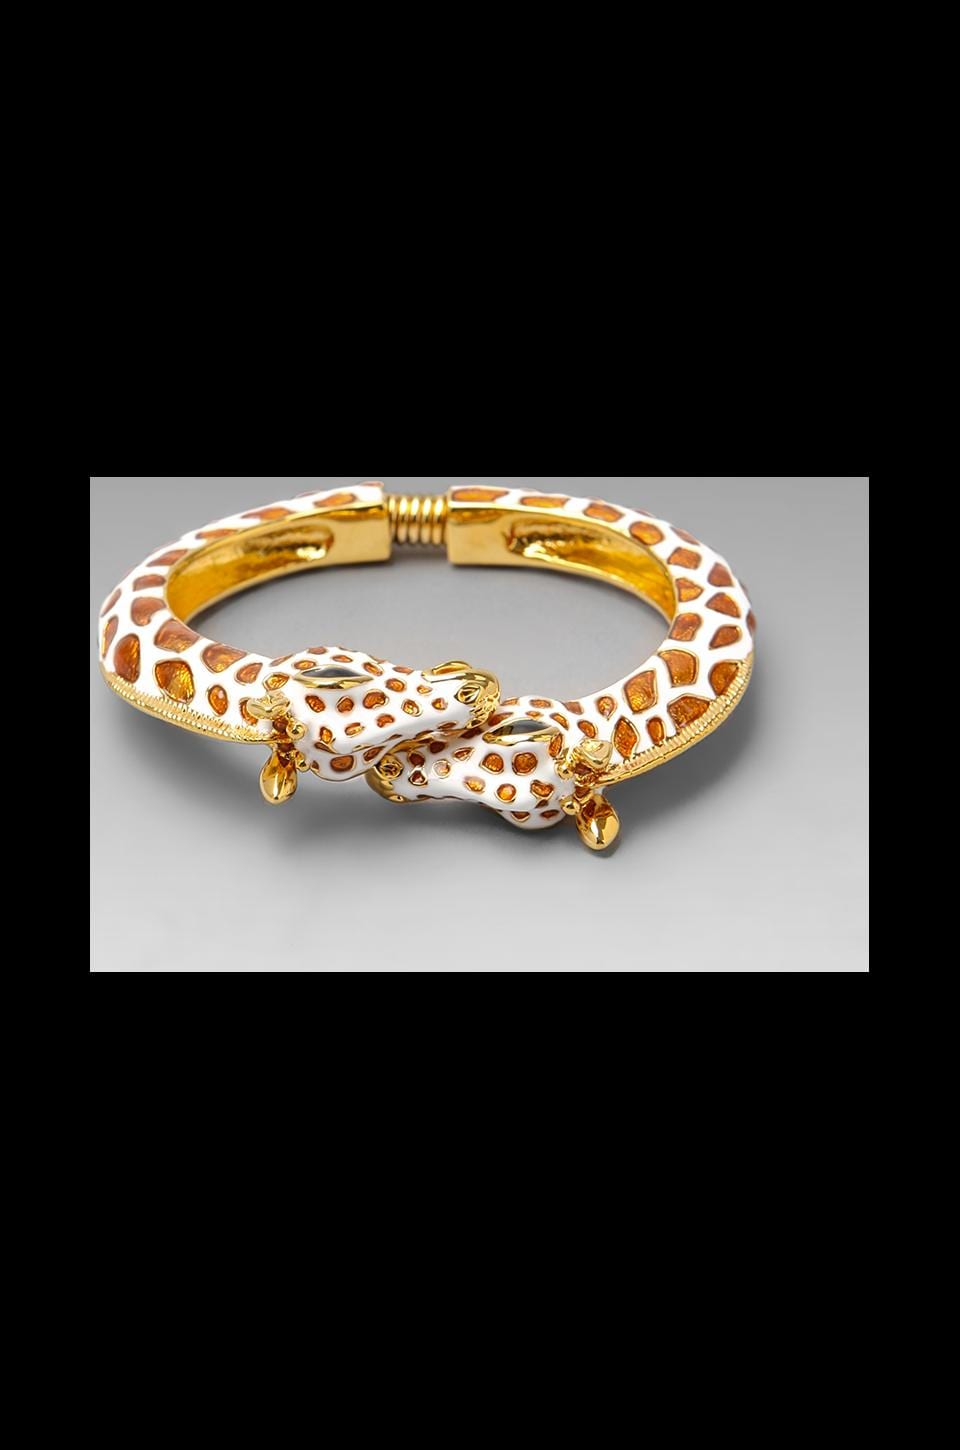 Kenneth Jay Lane Giraffe Hinge Bracelet in Multi